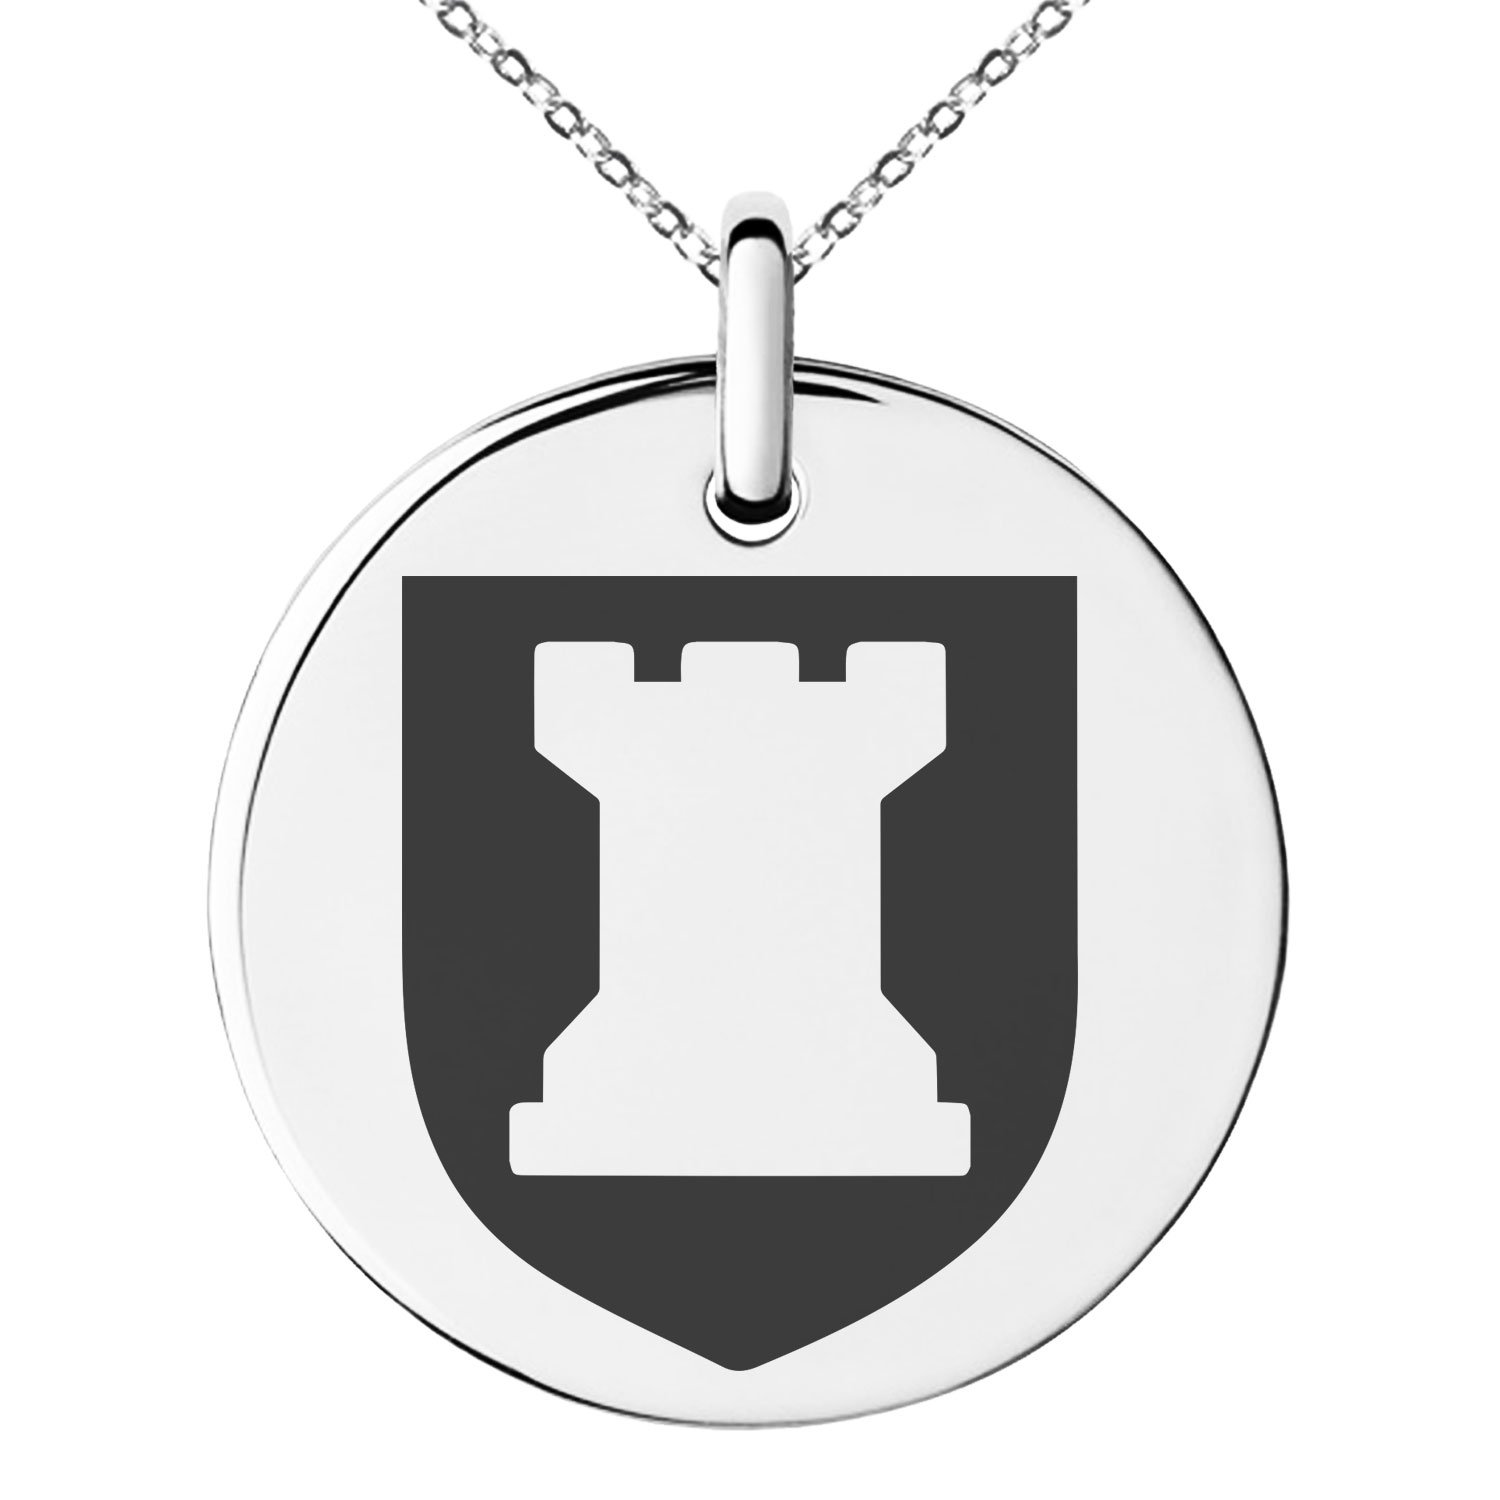 Tioneer Stainless Steel Rook Strategy Coat of Arms Shield Symbol Engraved Small Medallion Circle Charm Pendant Necklace